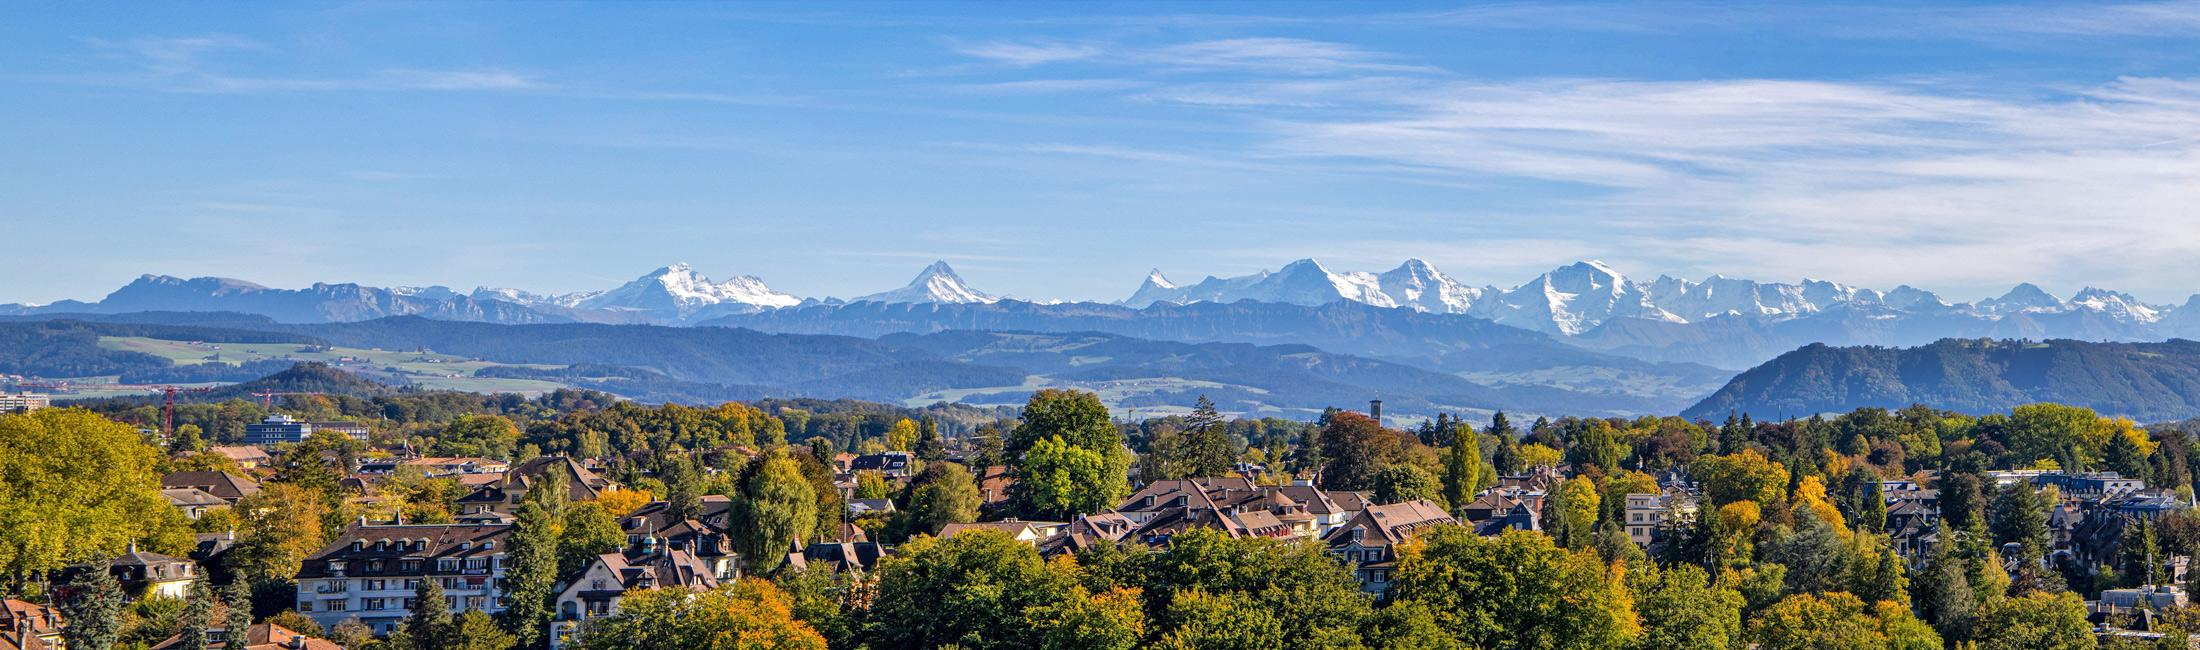 The best of Germanys Bavaria and Black Forest, Switzerland and Liechtenstein, Austria and its Sound of Music Country